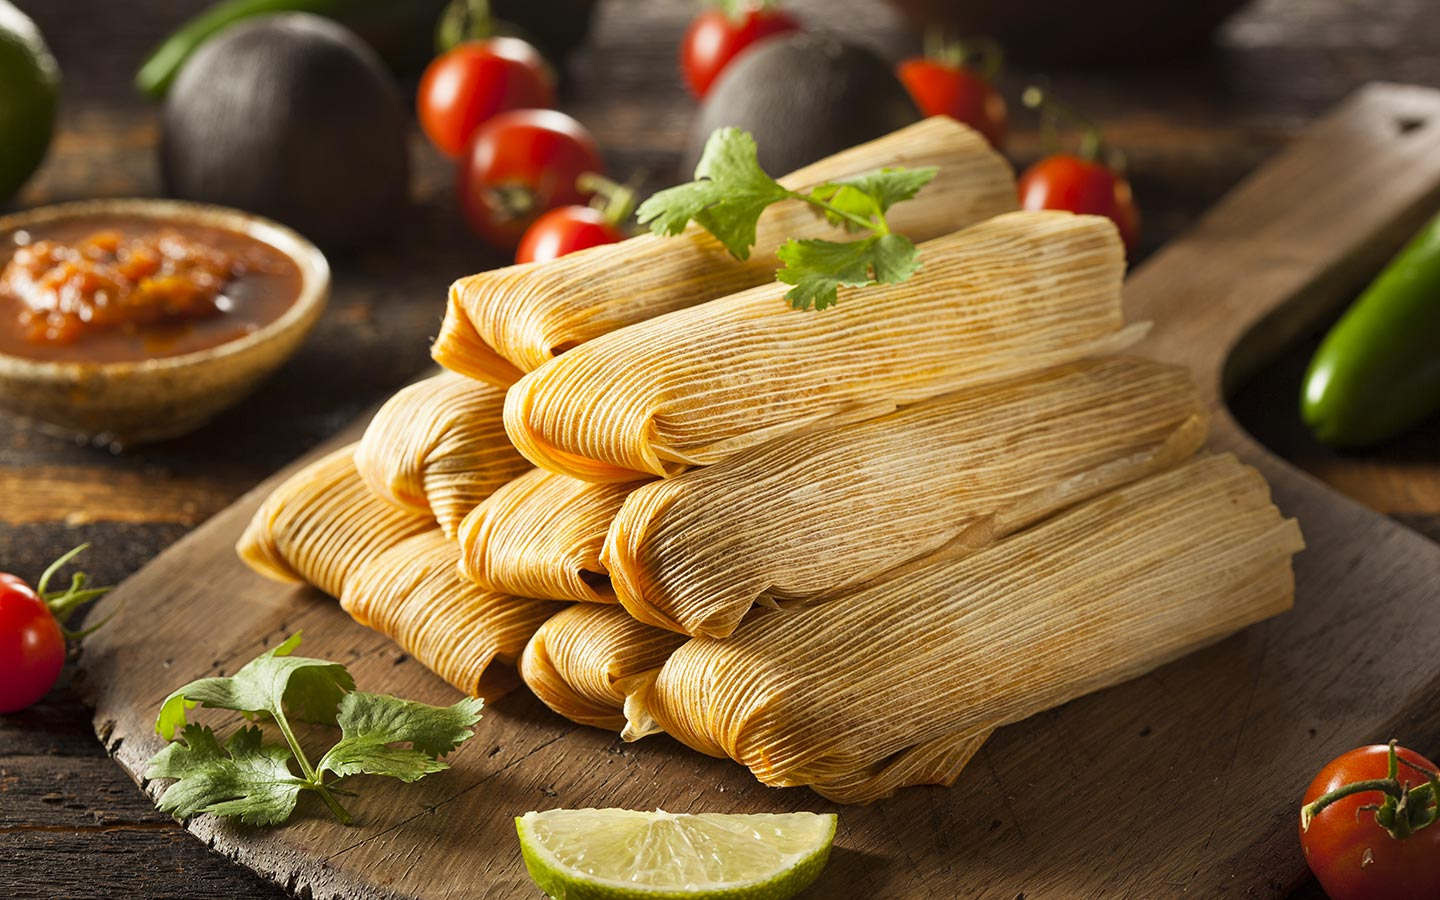 Plate of New Mexican Tamales